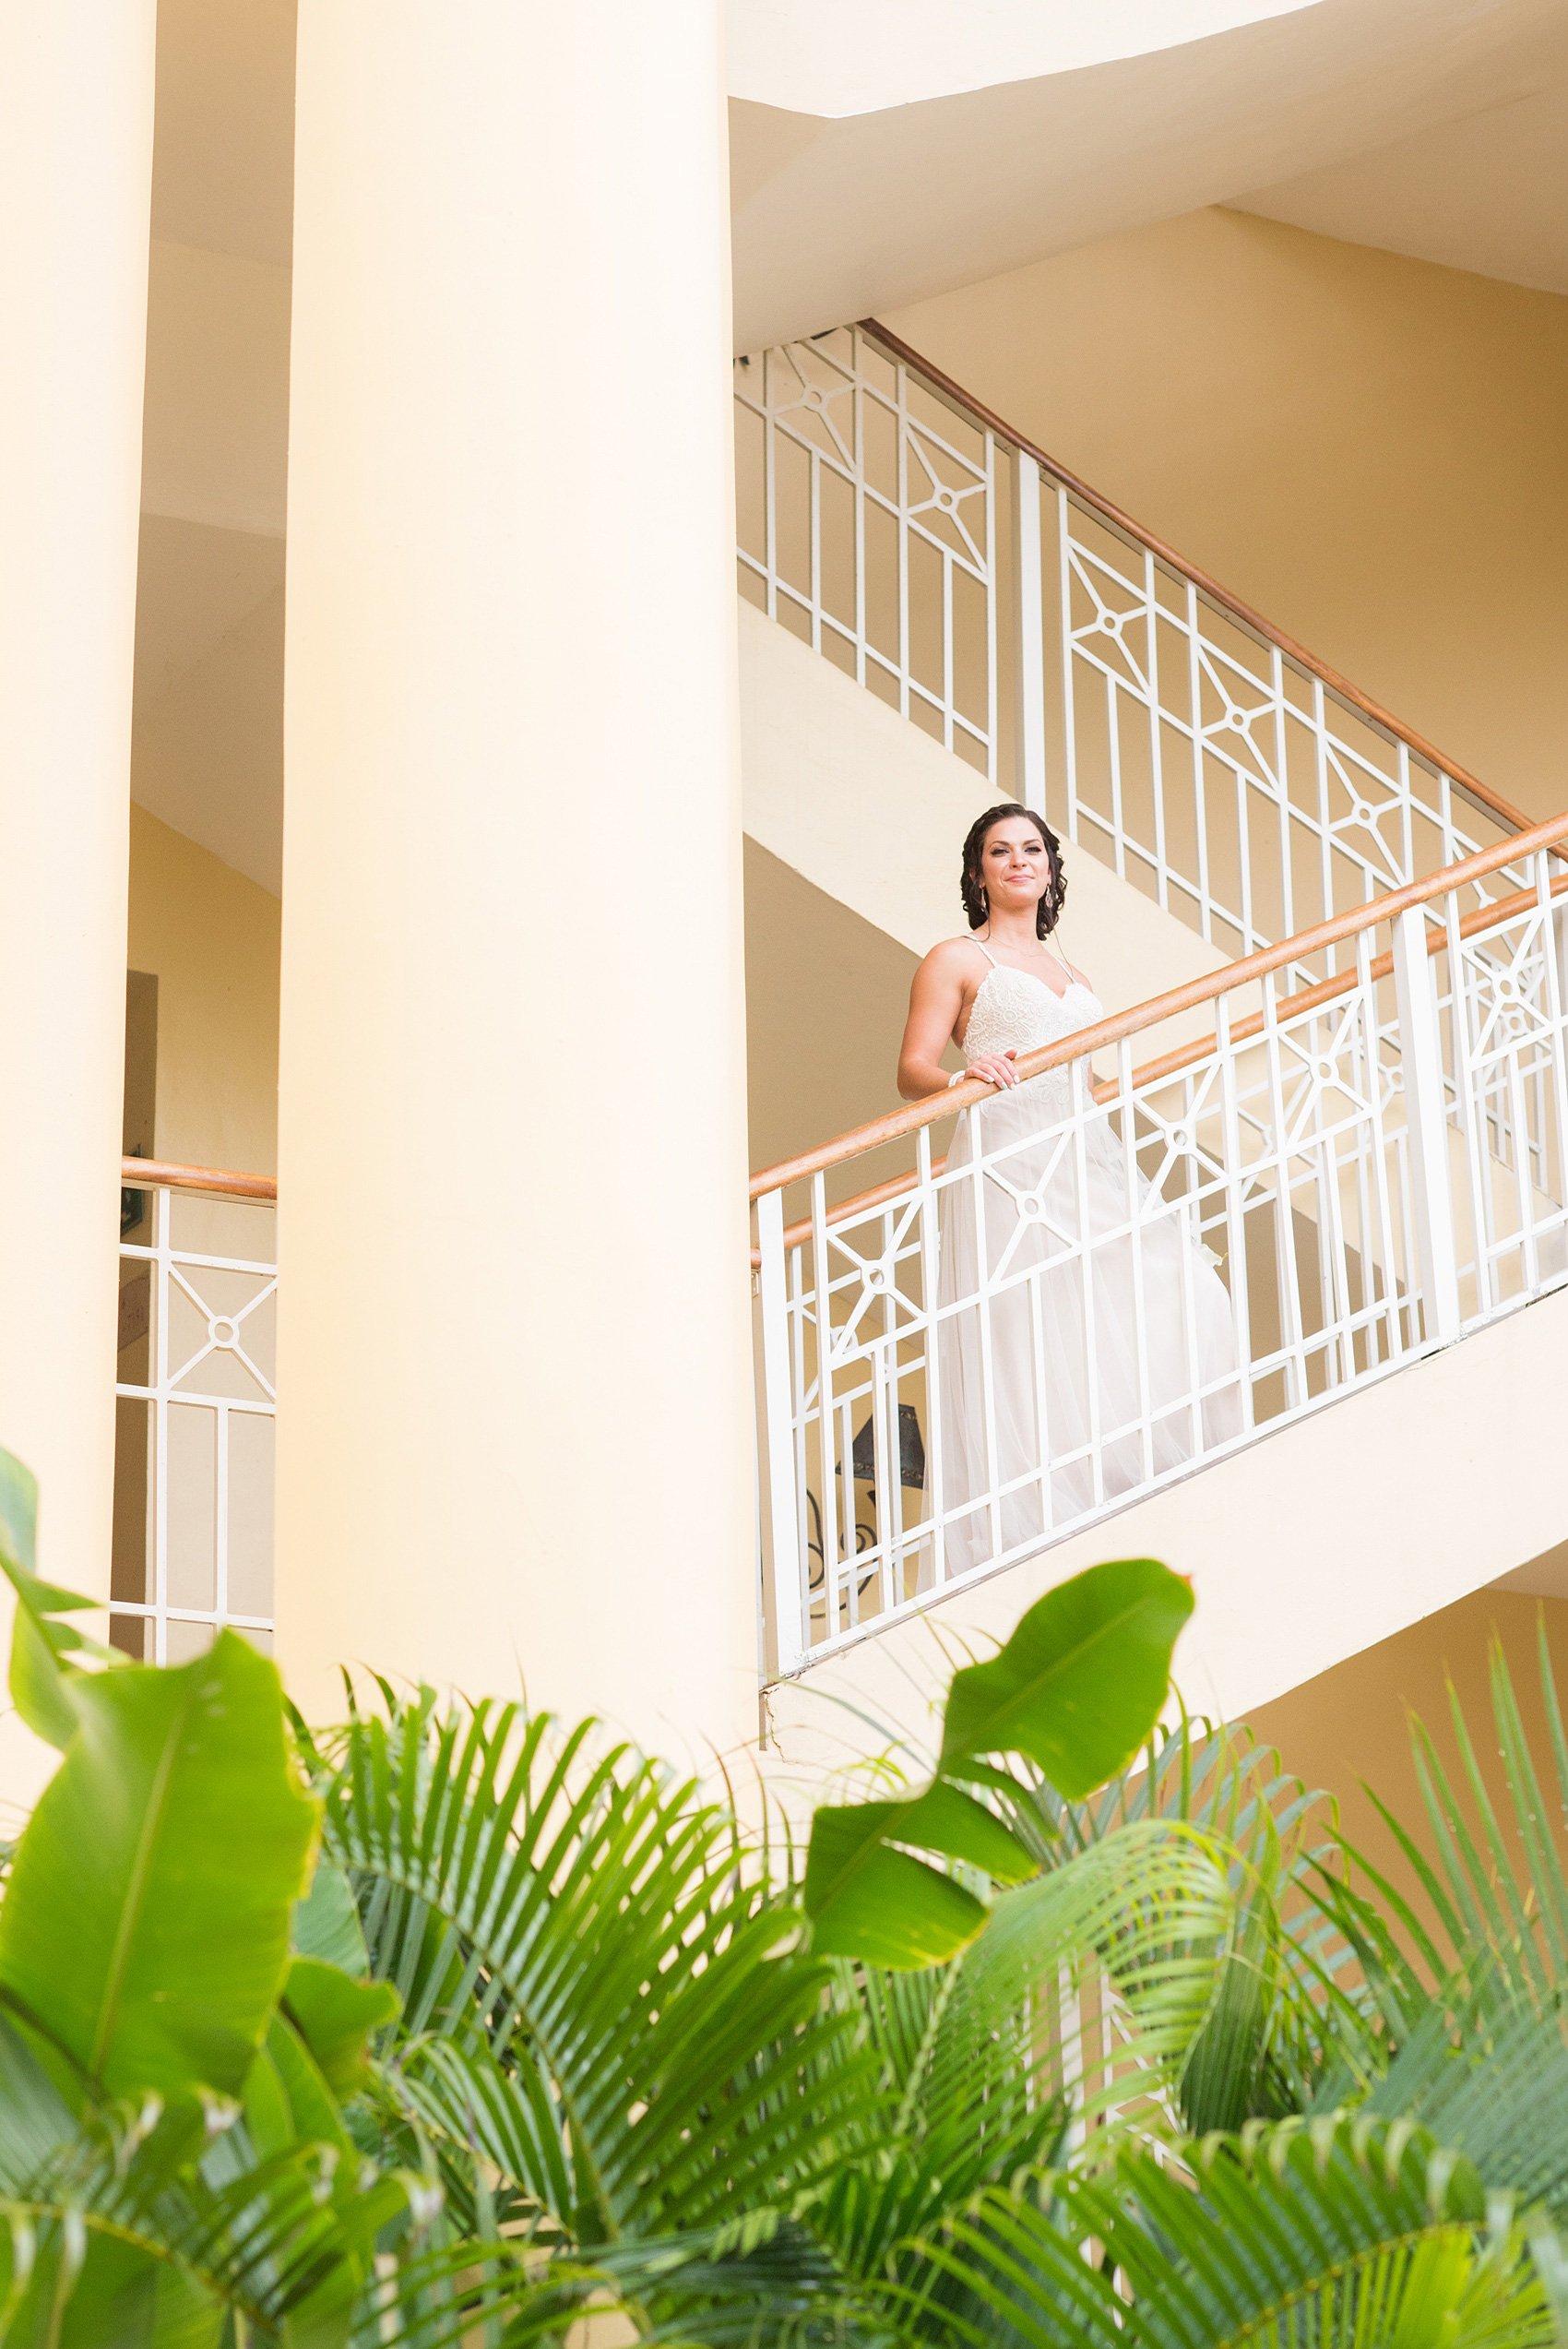 Mikkel Paige Photography photos from a wedding at Grand Paraiso, Mexico, Playa del Carmen Iberostar resort. Picture of the bride in on a staircase at the resort.